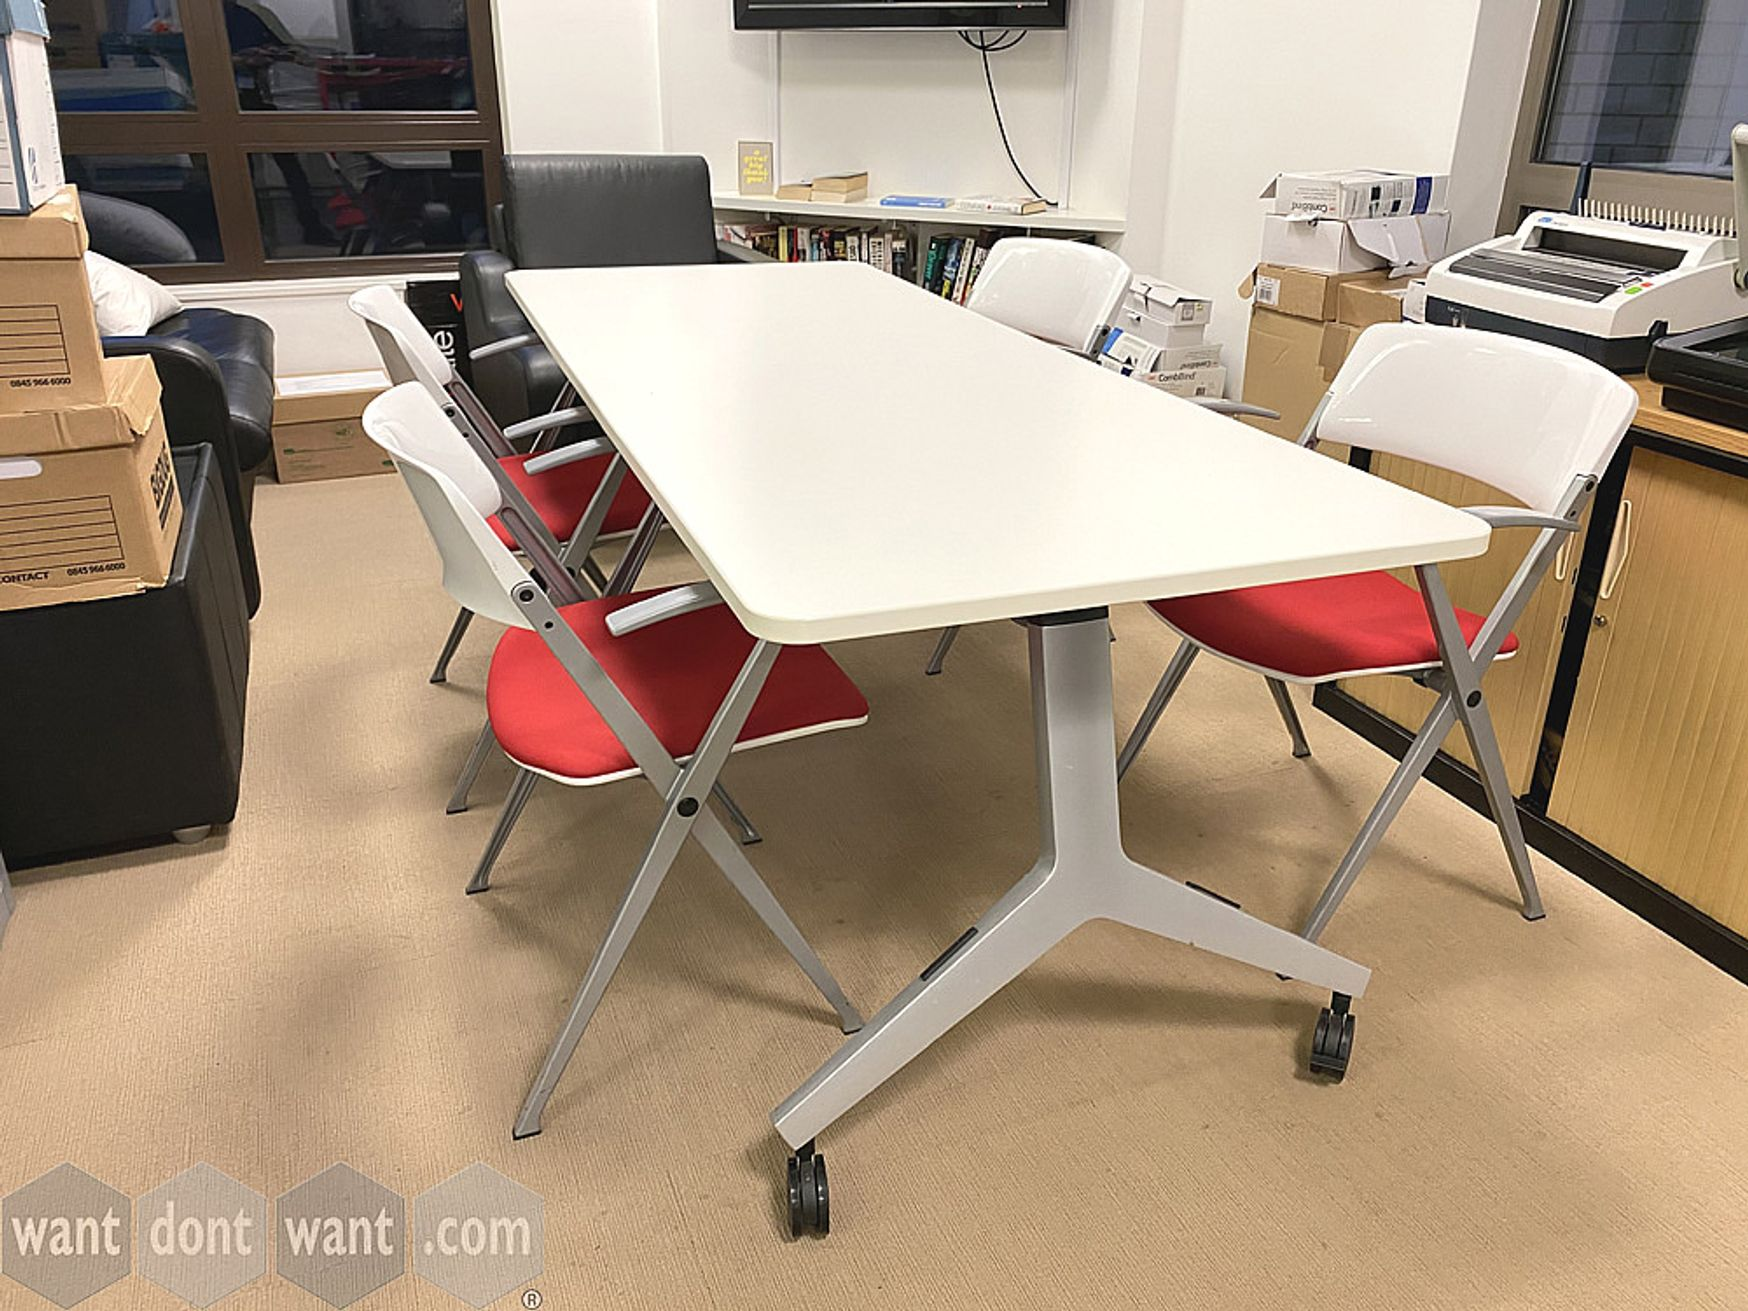 Smart used white table on silver legs with castors